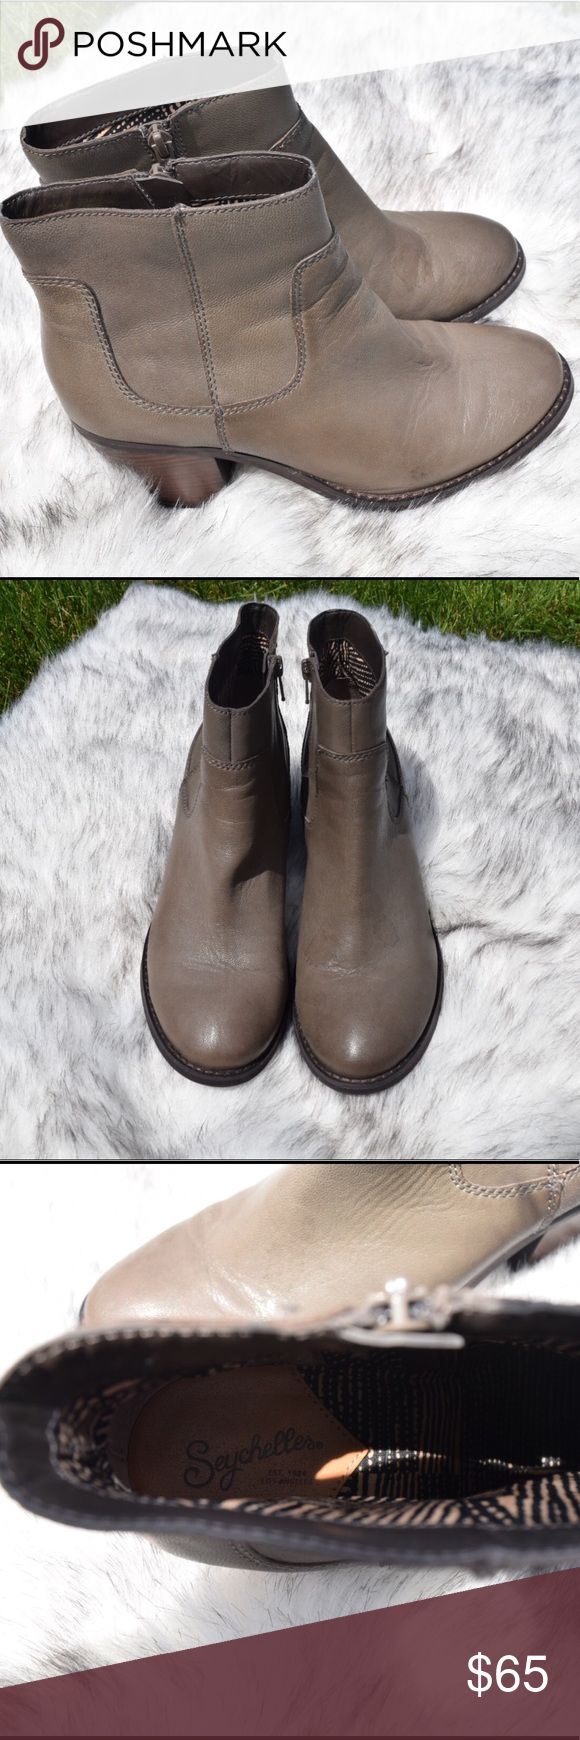 Grey Leather Seychelles Booties Only worn a few times! Grey Leather Seychelles Booties Seychelles Shoes Heeled Boots